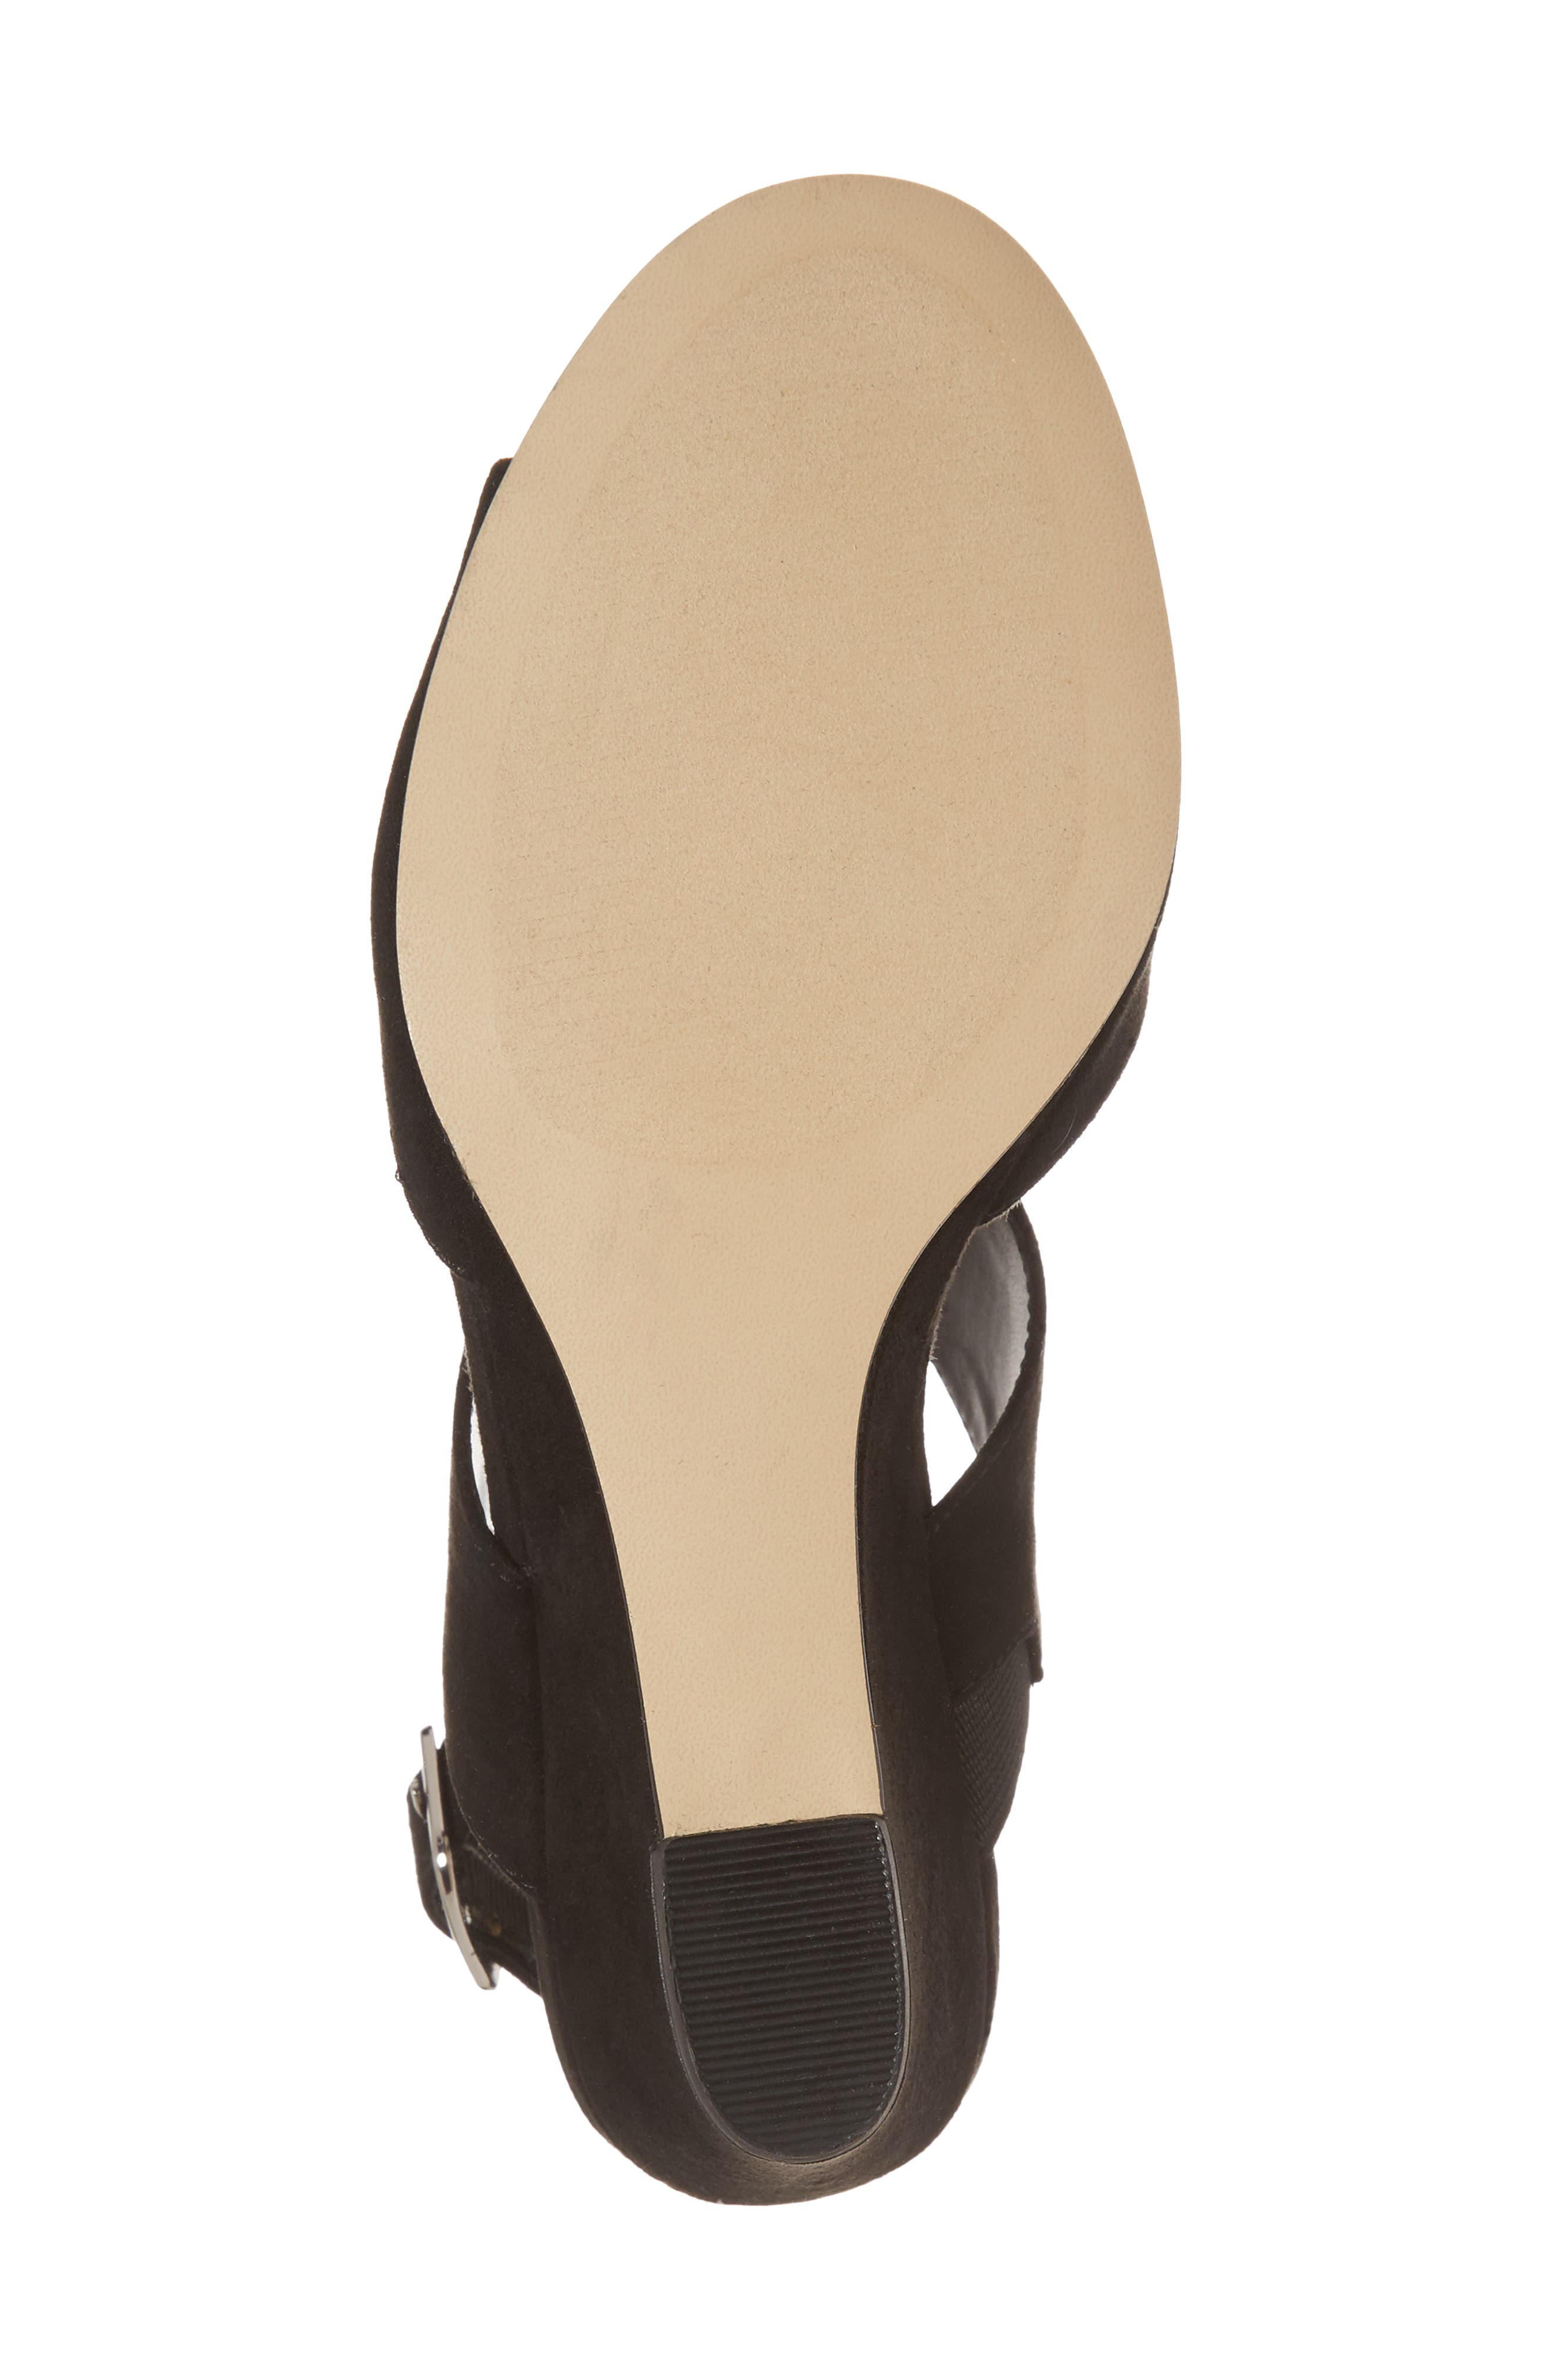 Slayte Wedge Sandal,                             Alternate thumbnail 6, color,                             BLACK FAUX SUEDE